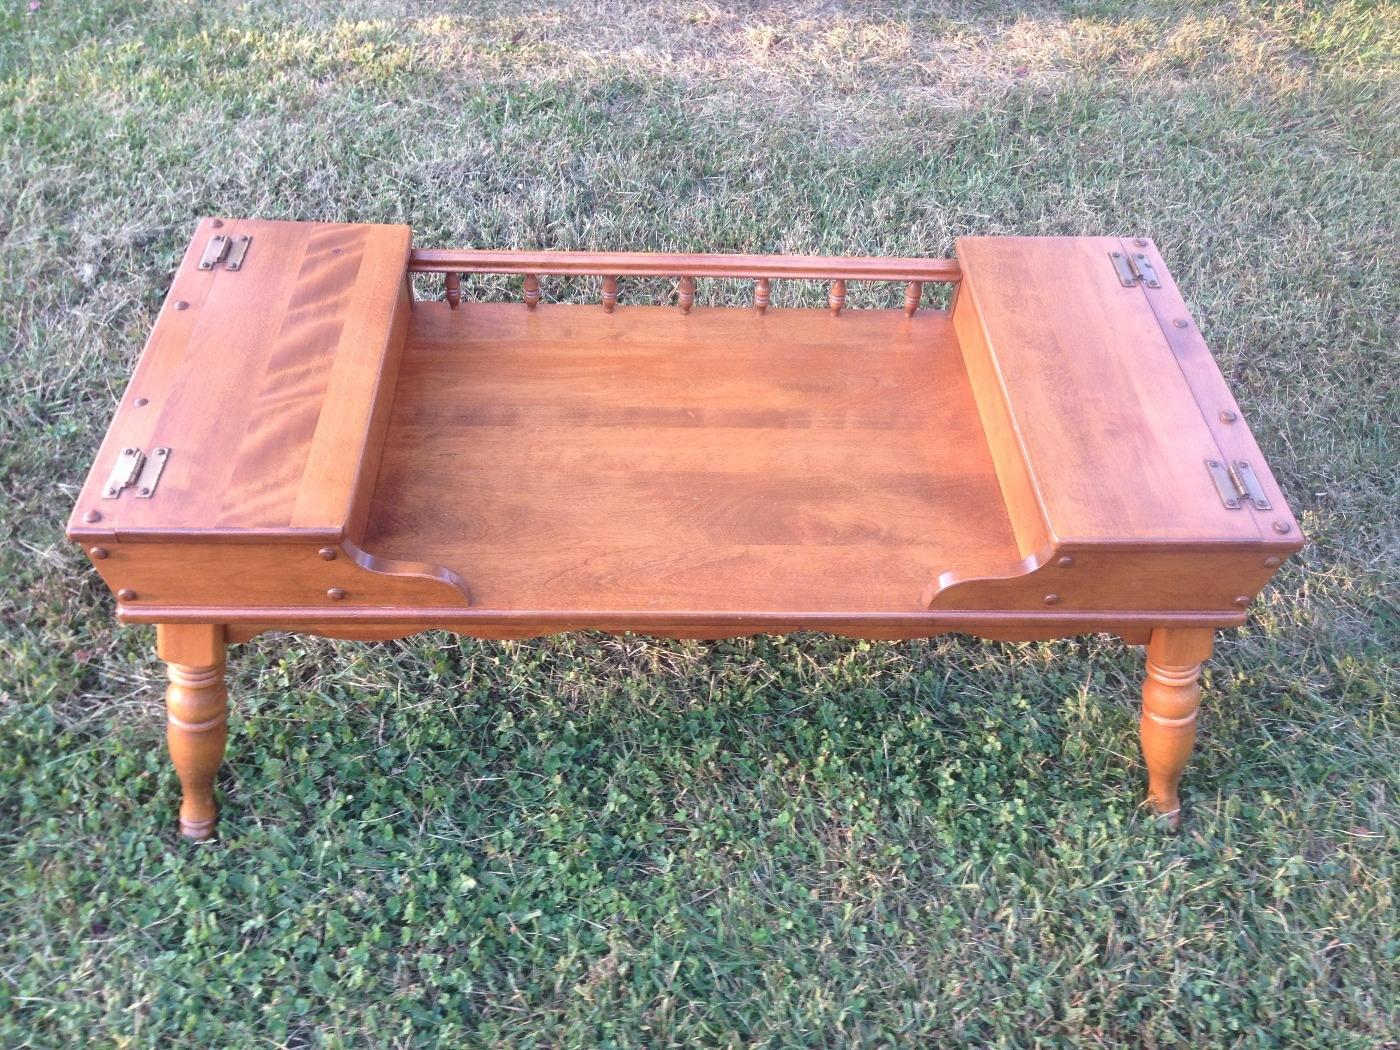 Find More Price Reduced Vintage Ethan Allen Early